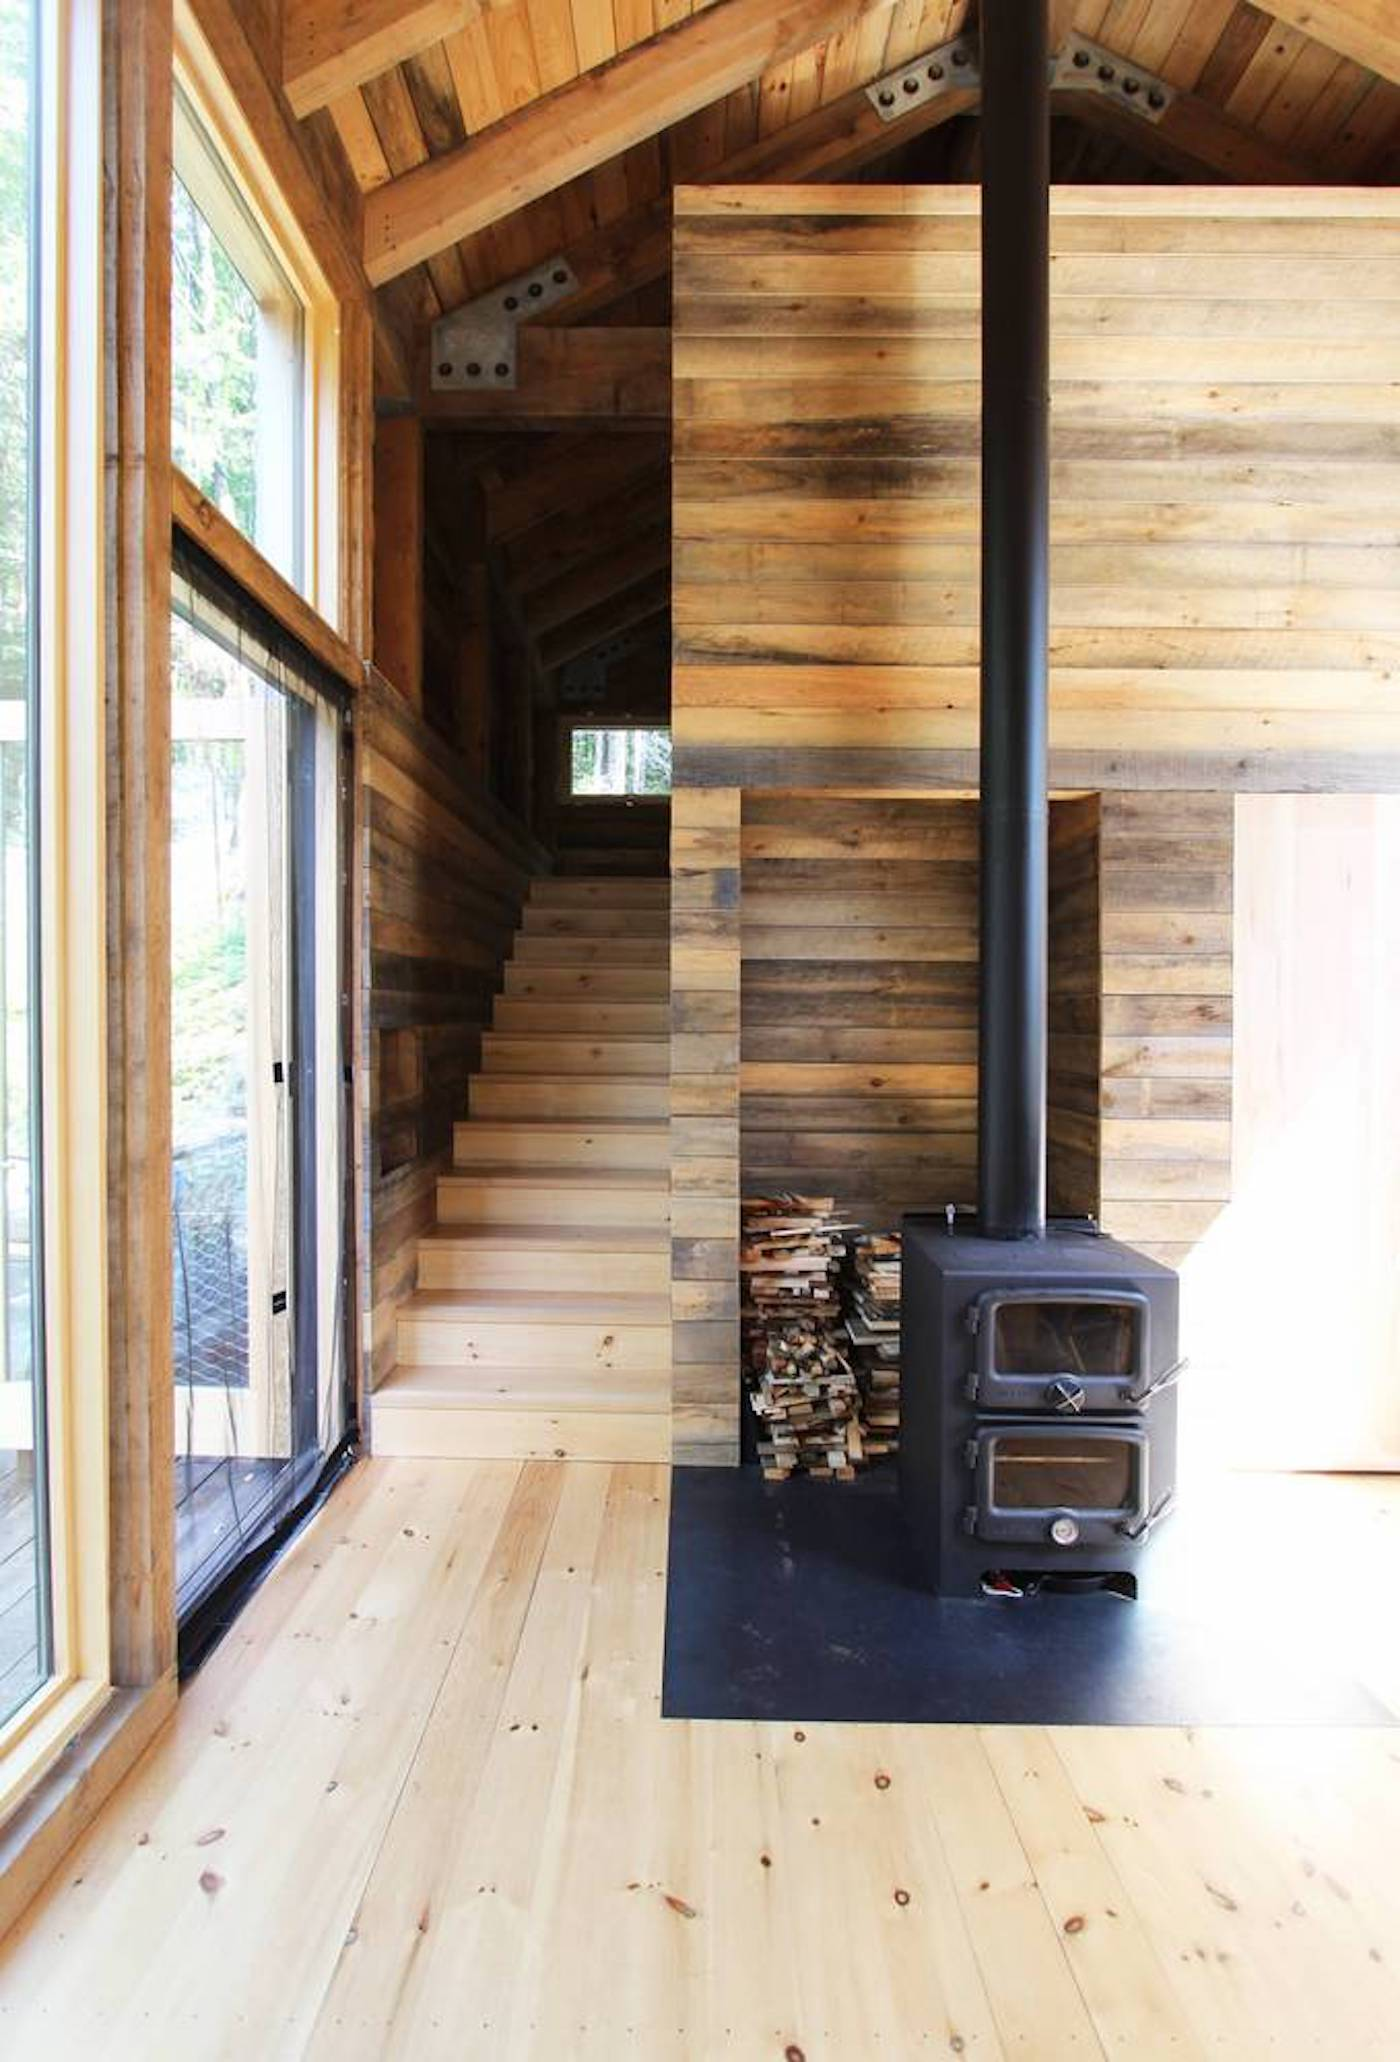 Fireplace inside timber clad off-grid cabin